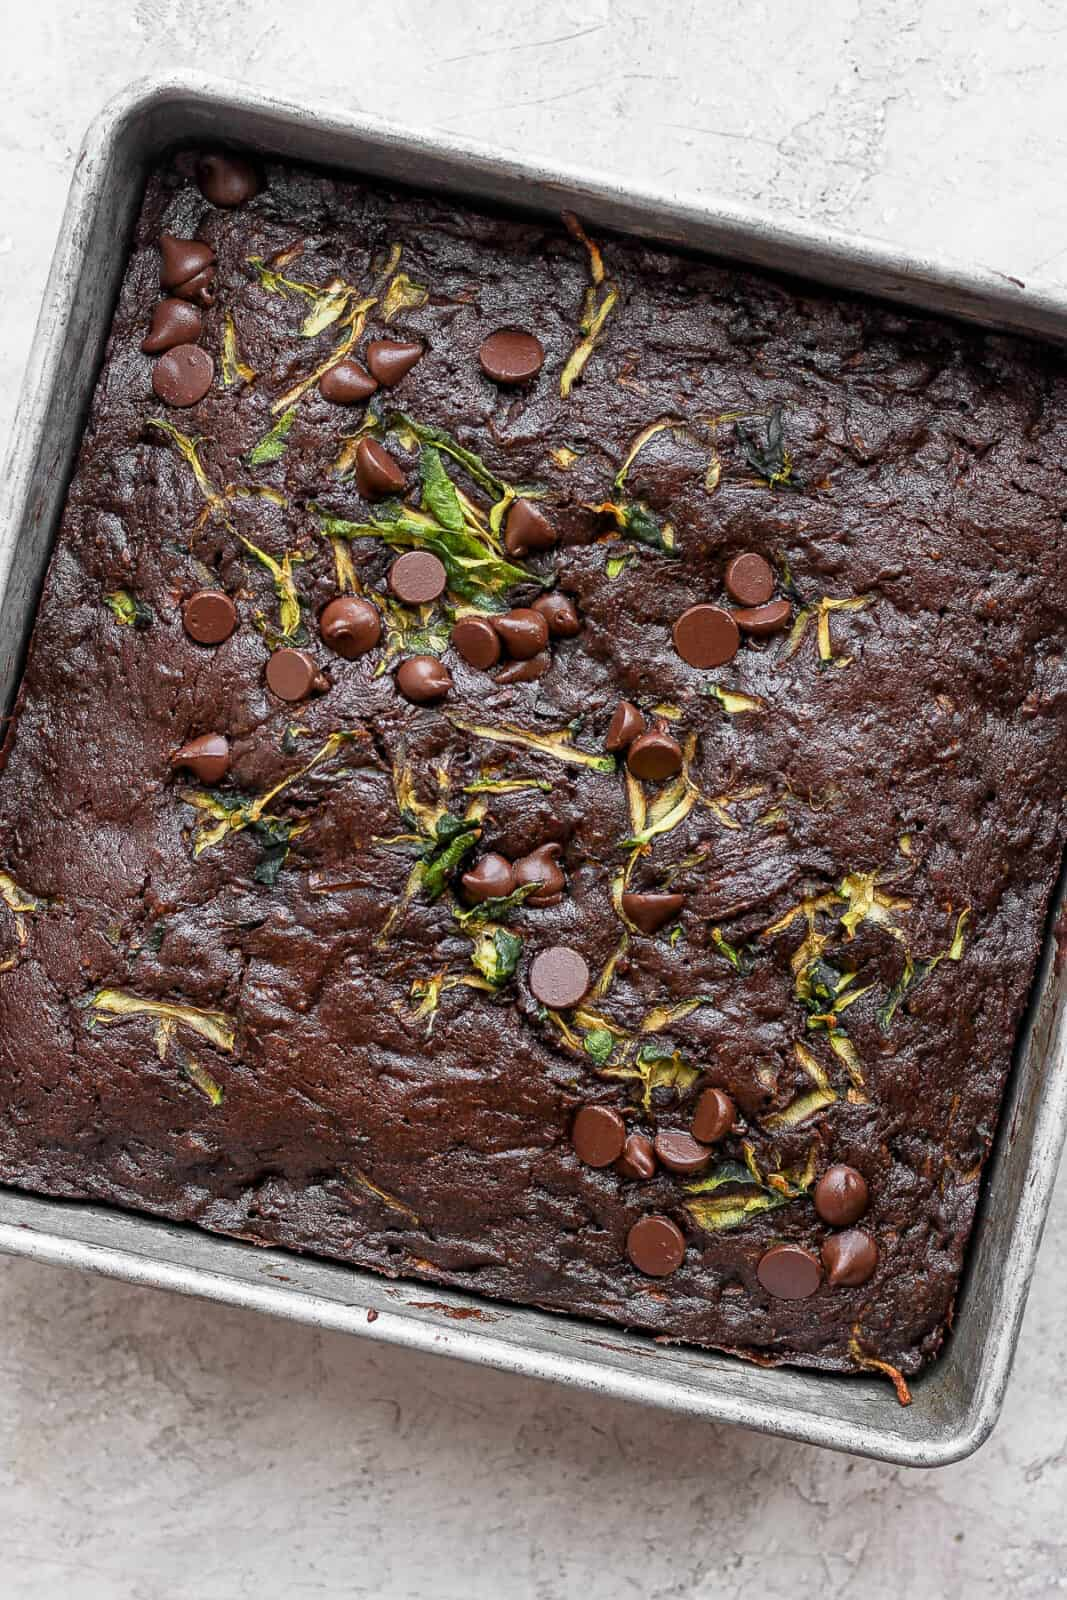 Zucchini brownies just out of the oven.